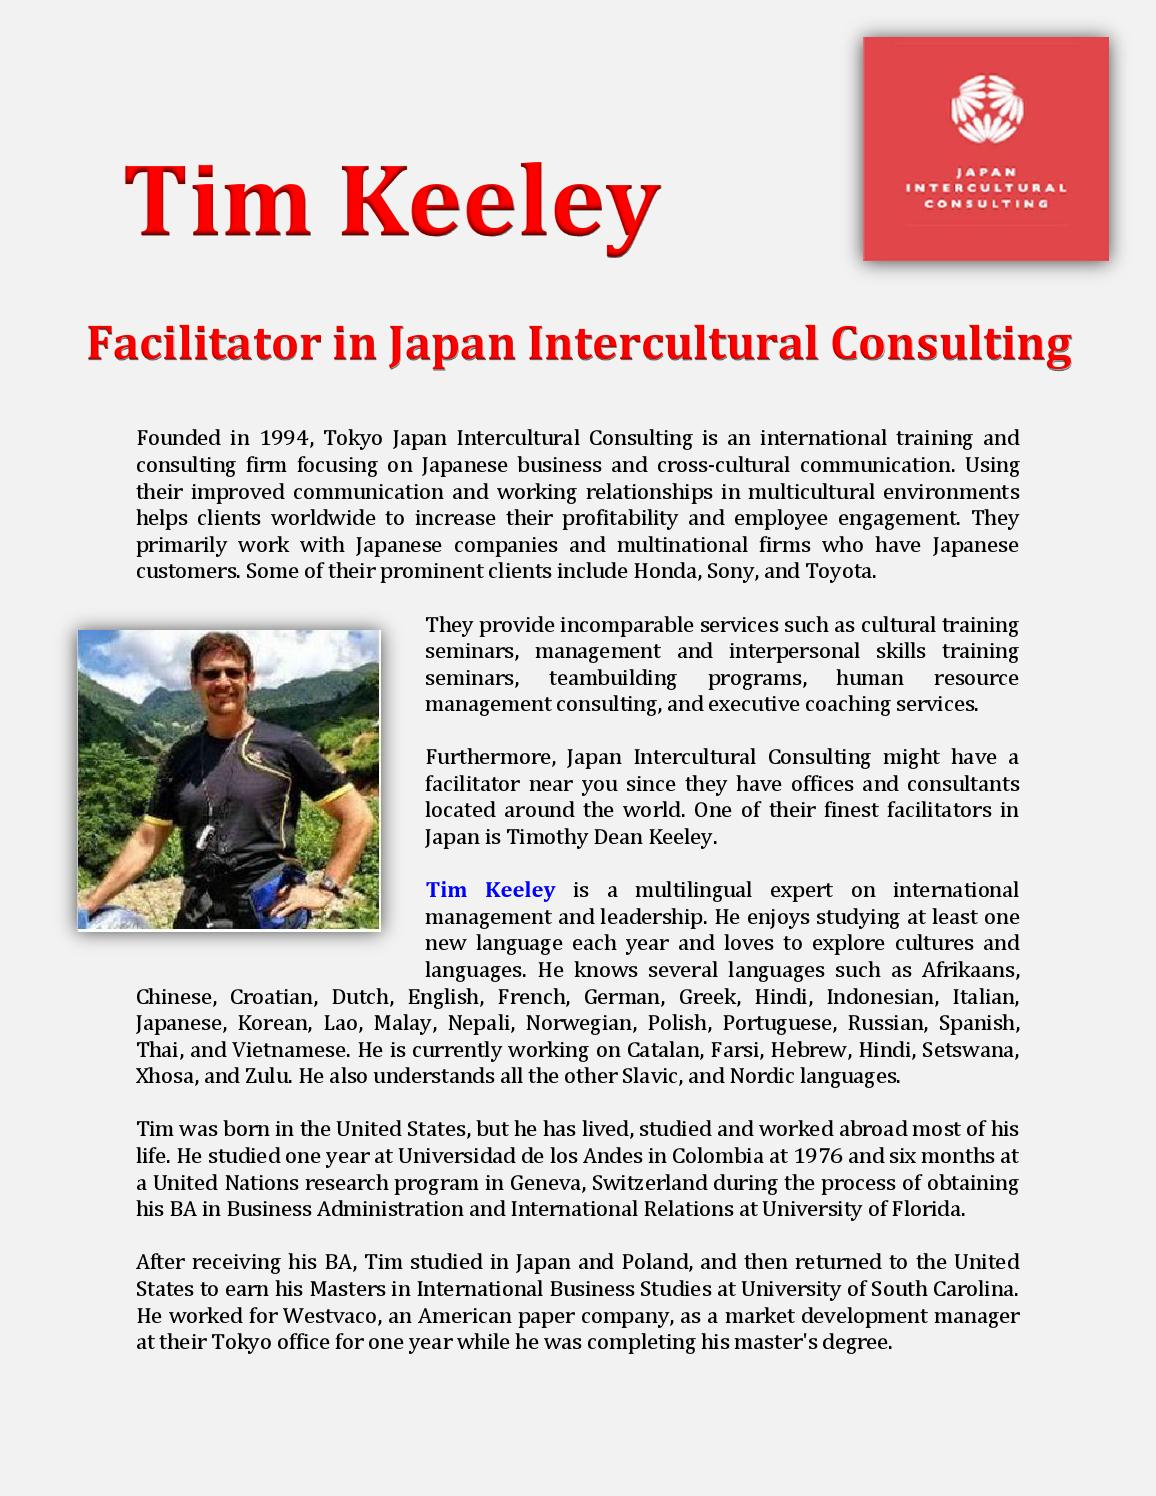 Tim Keeley: Facilitator in Japan Intercultural Consulting by Chavela Hygins  Issuu